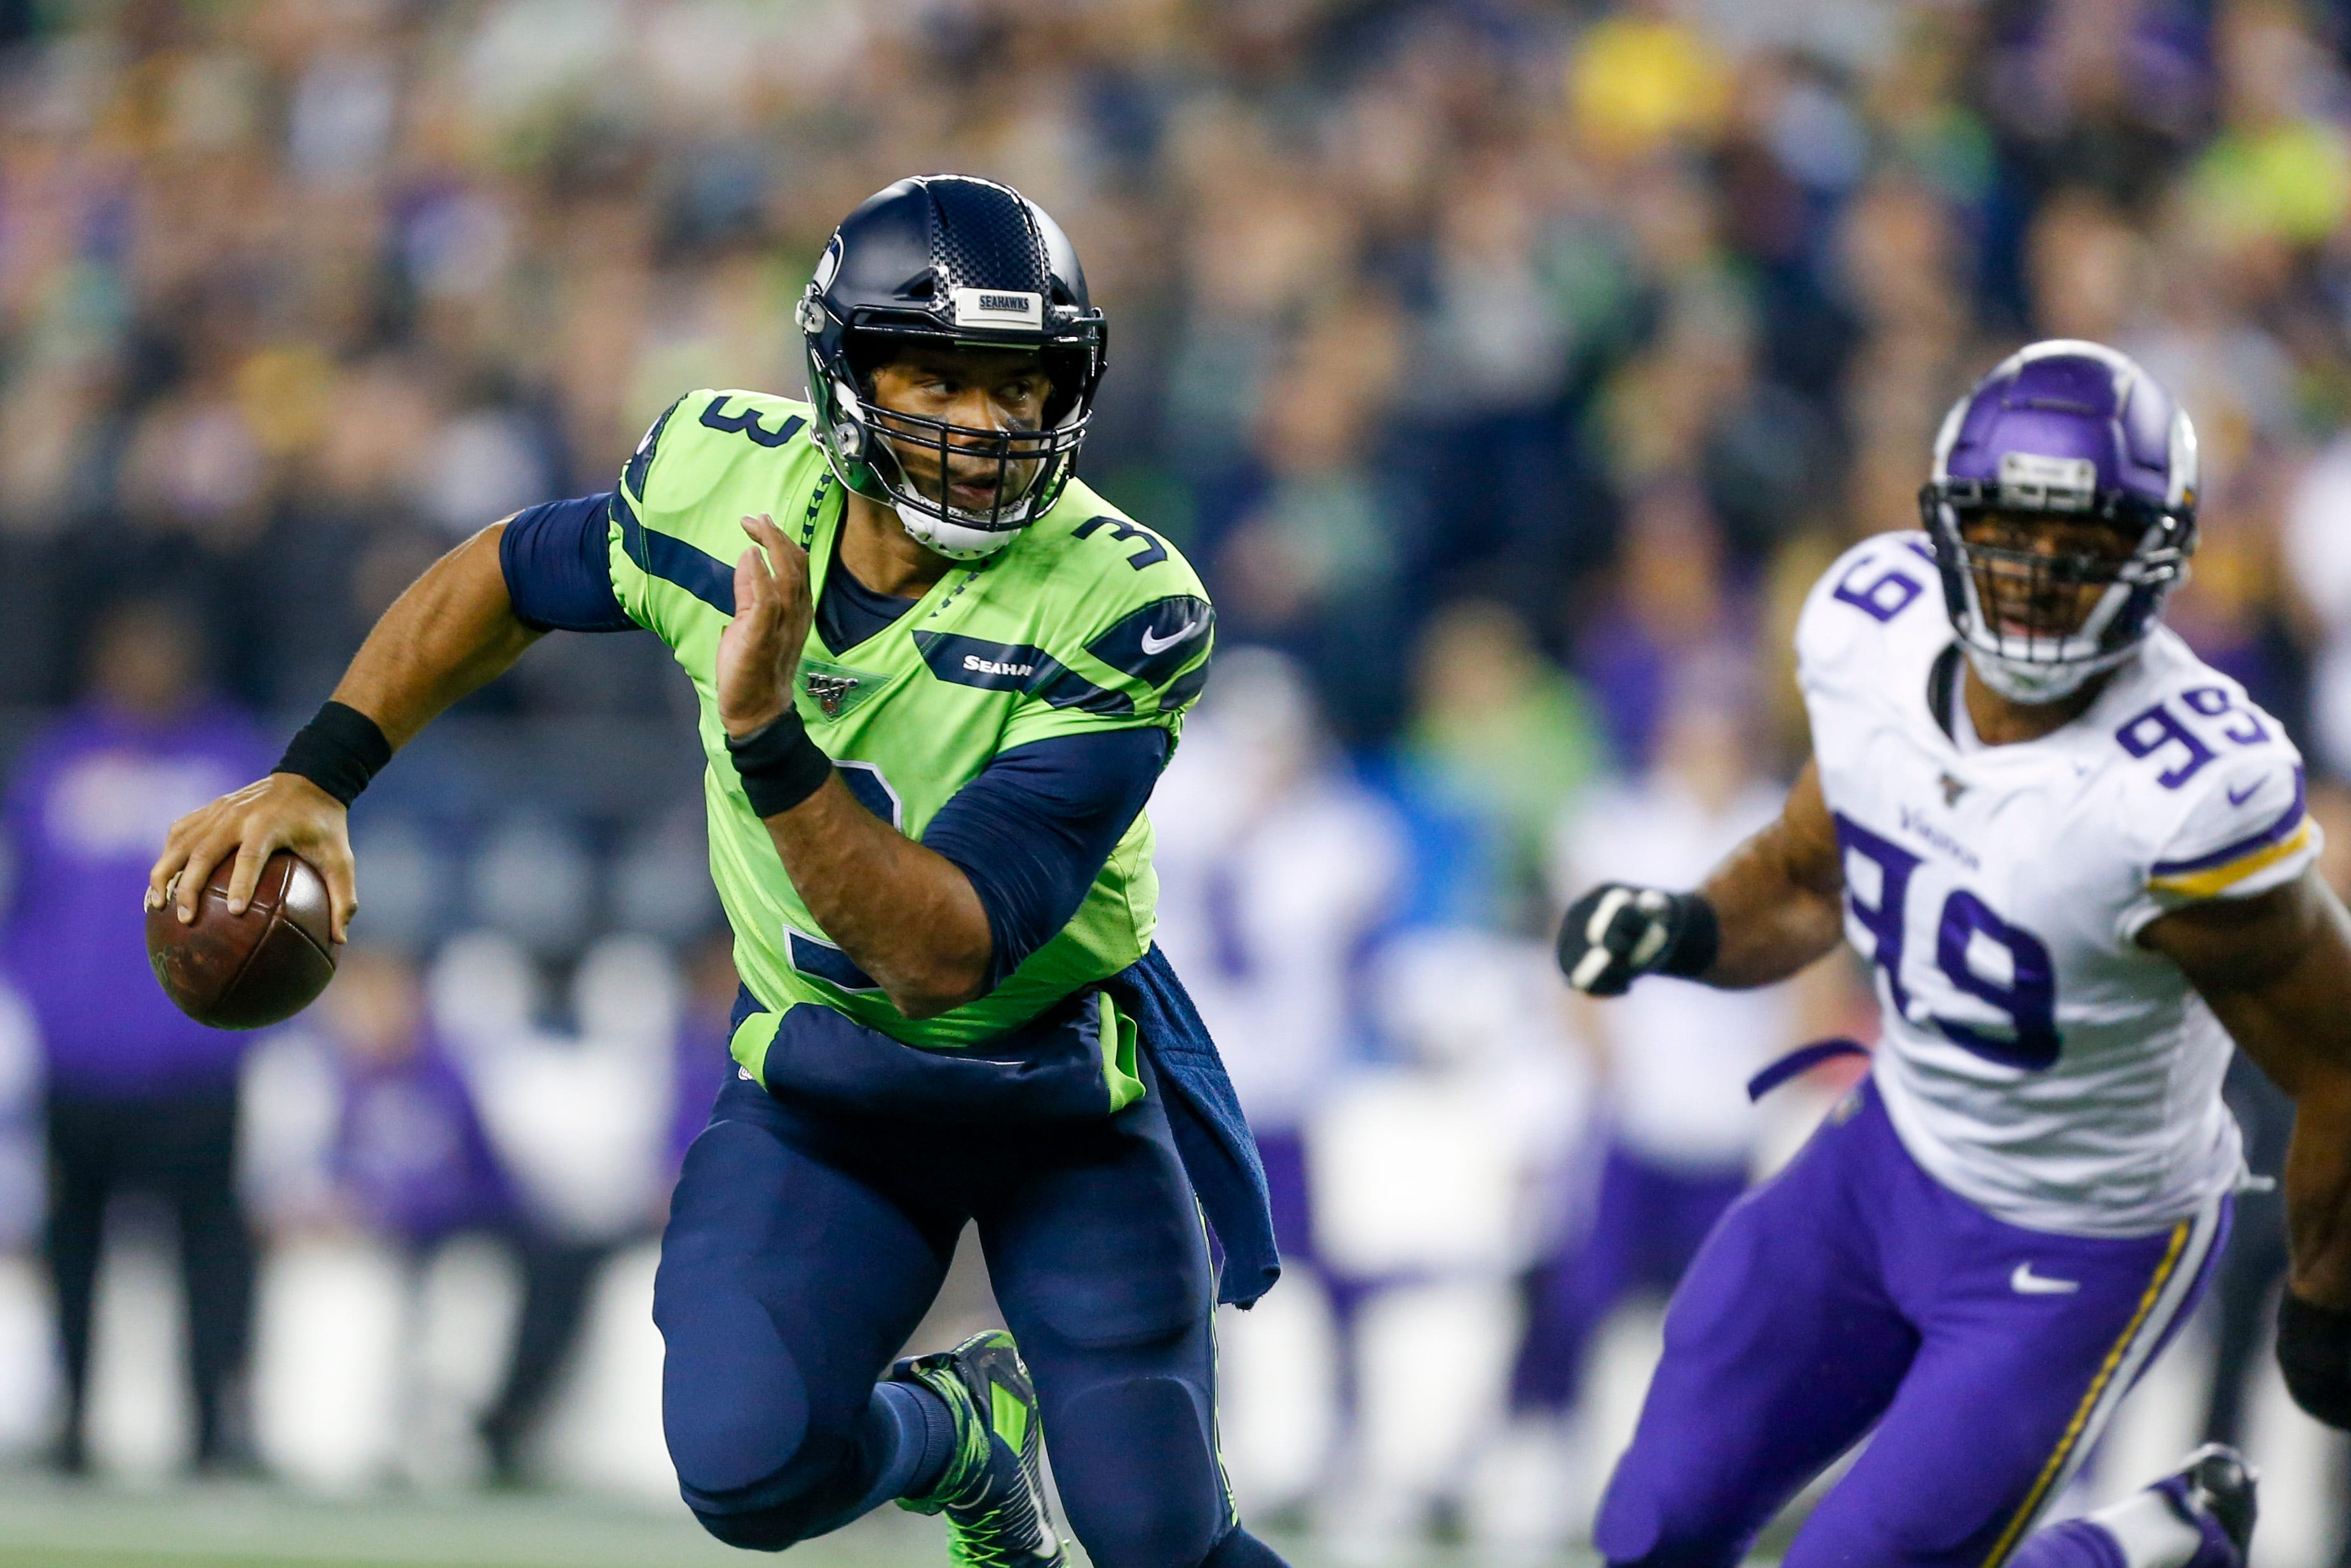 NFL playoff picture after Week 13: Seahawks move to No. 2 seed in NFC, bump 49ers to wild card